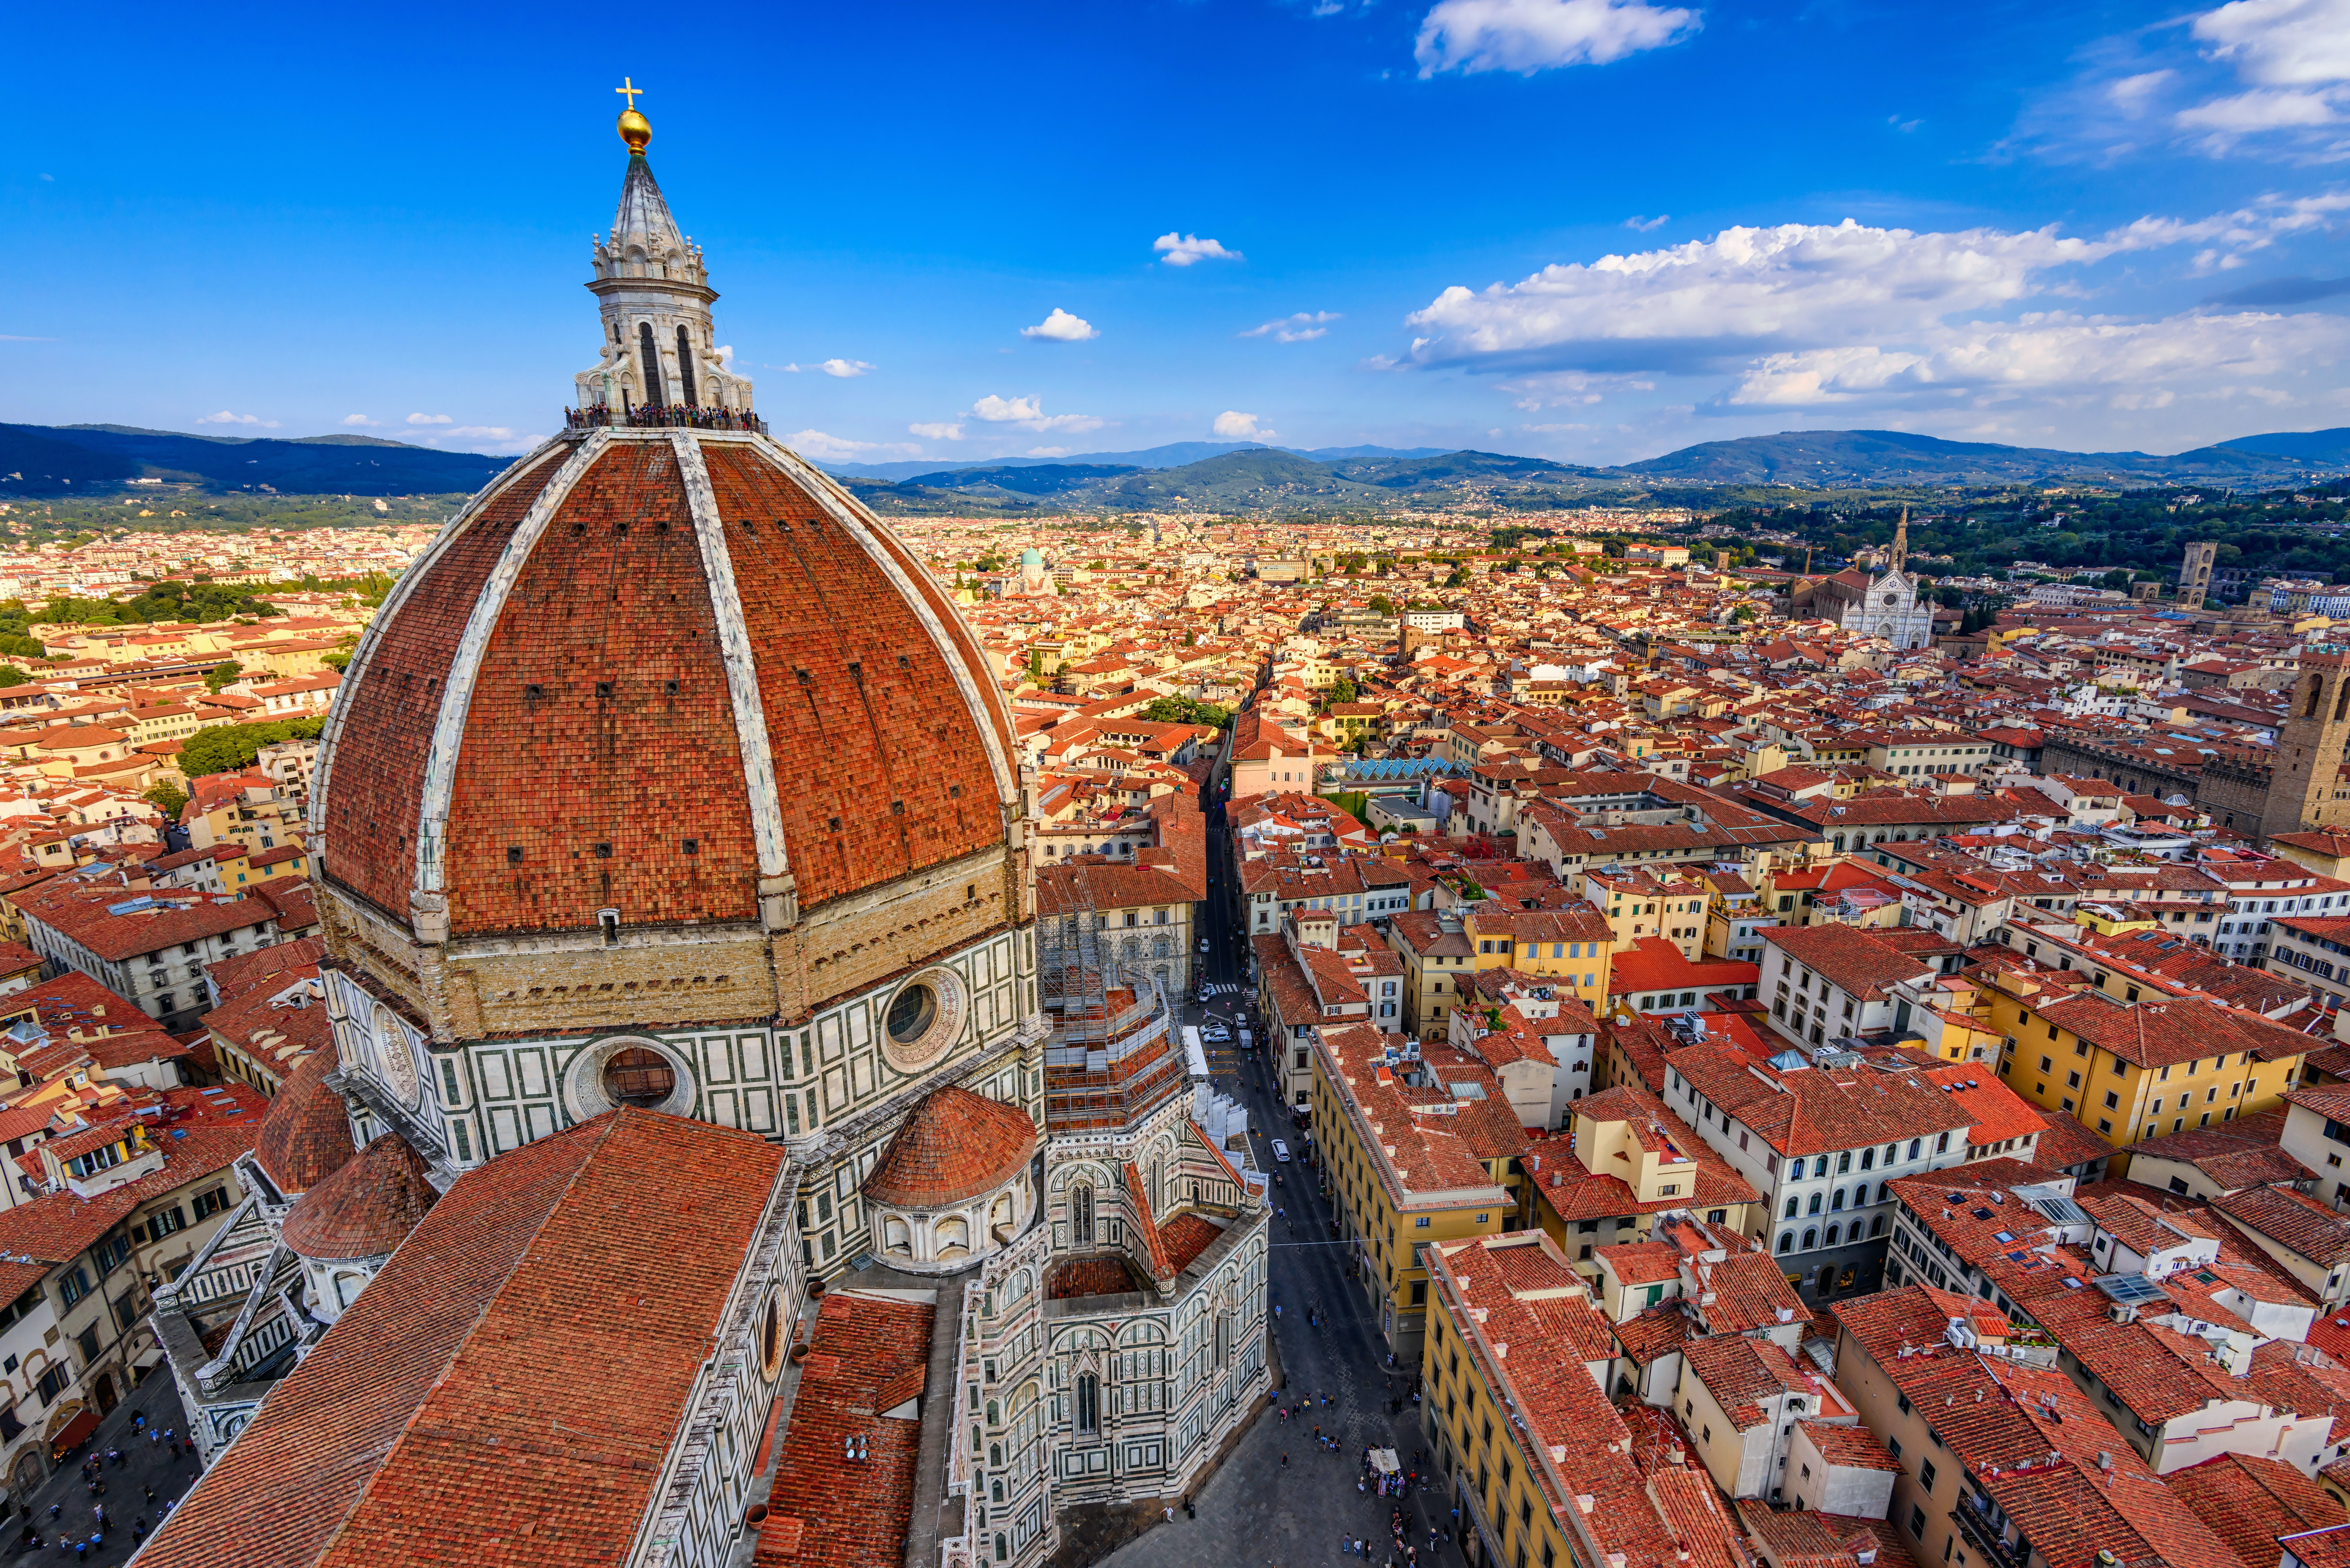 The skyline of Florence, Italy, dominated by the Basilica di Santa Maria del Fiore (Basilica of Saint Mary of the Flower)